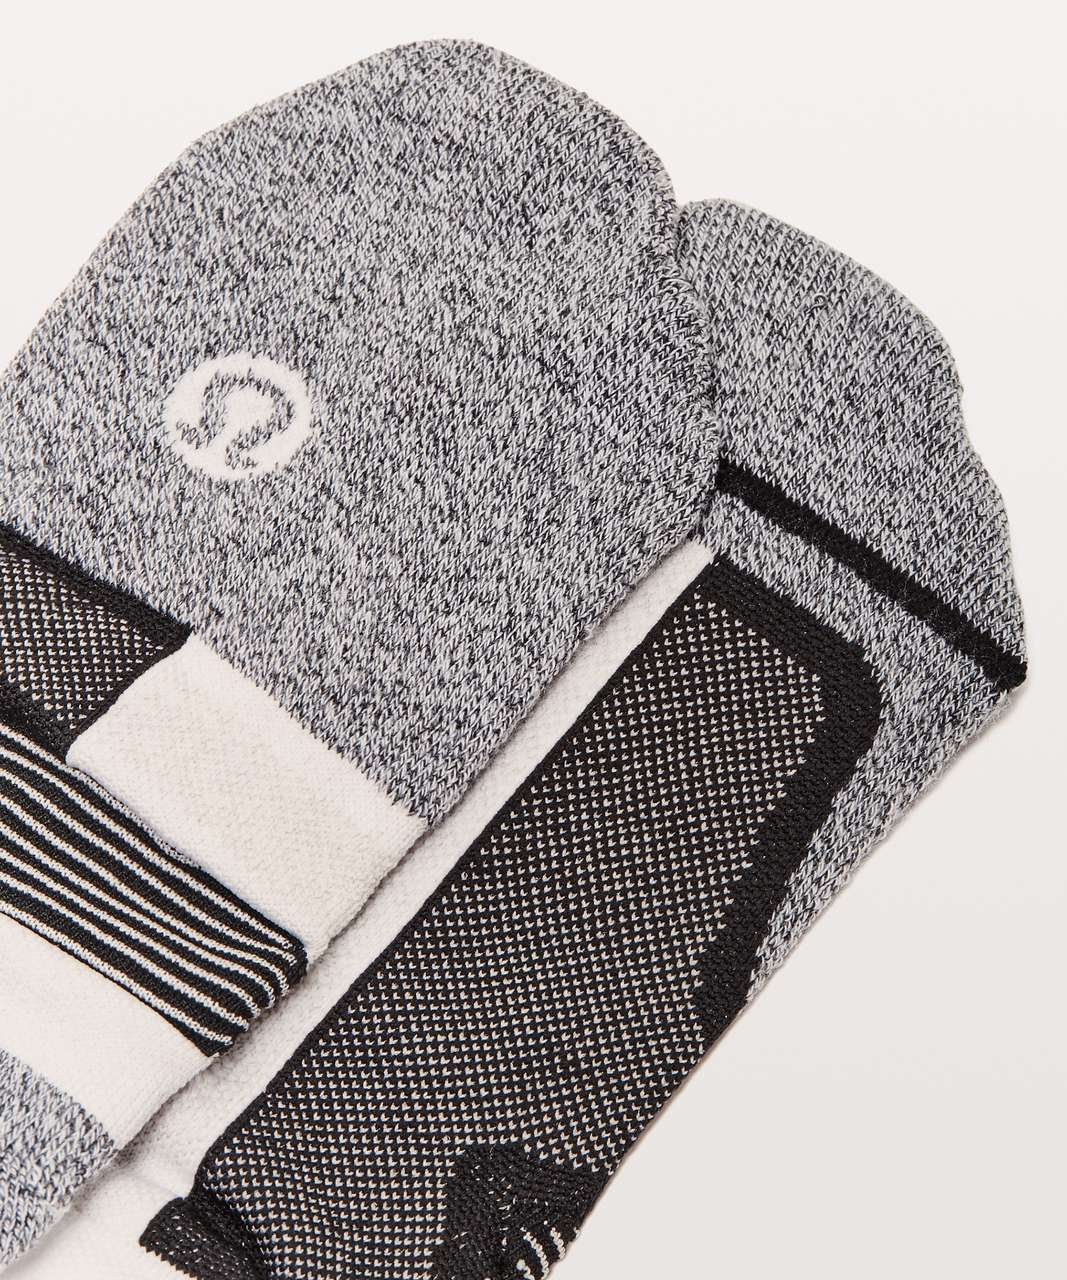 Lululemon Speed Sock *Silver - Black / White